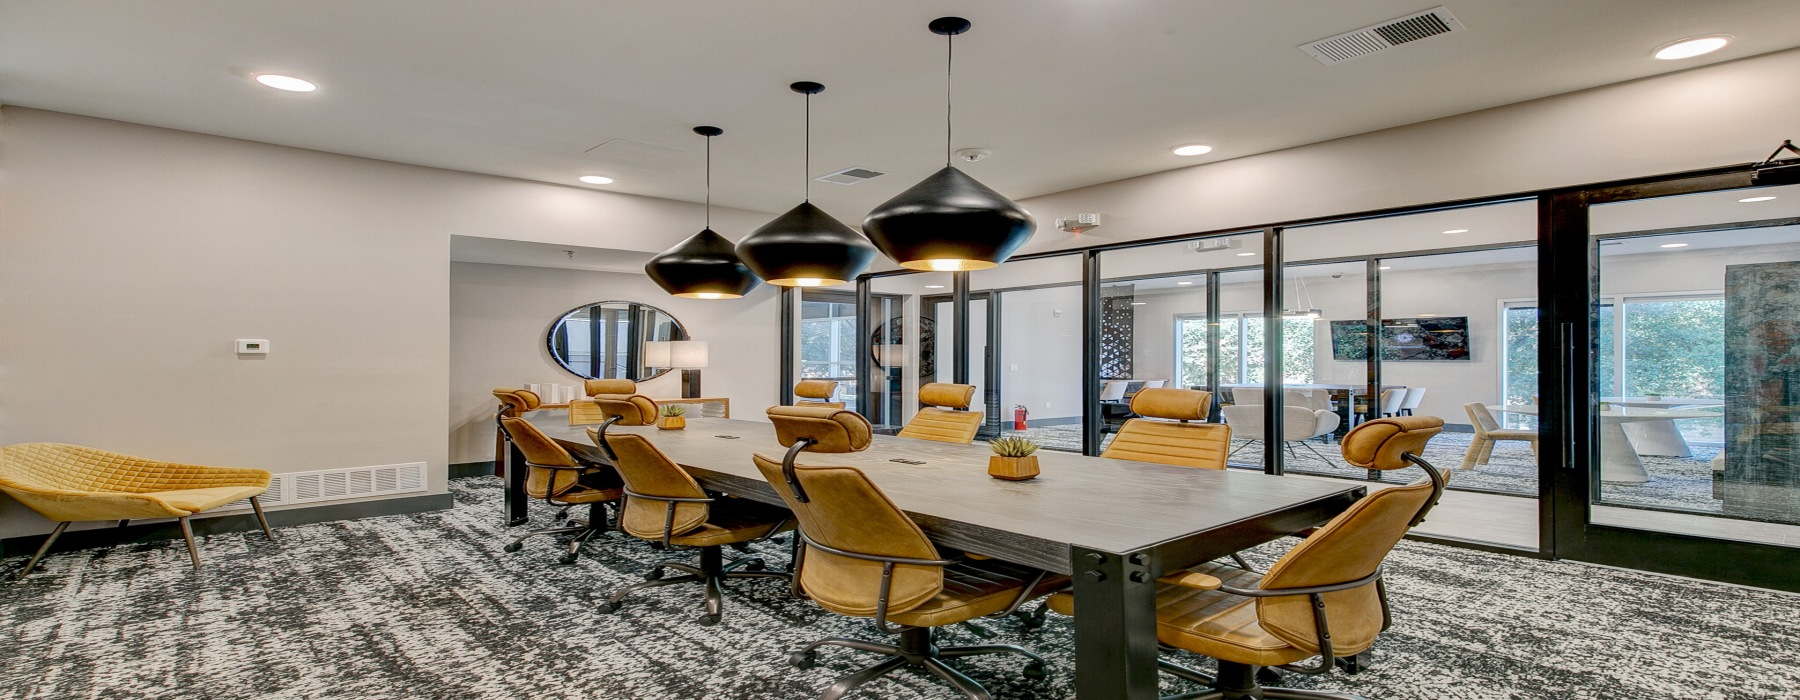 Oak Lawn Apartments in Dallas 24hr boardroom with yellow chairs and a long white table